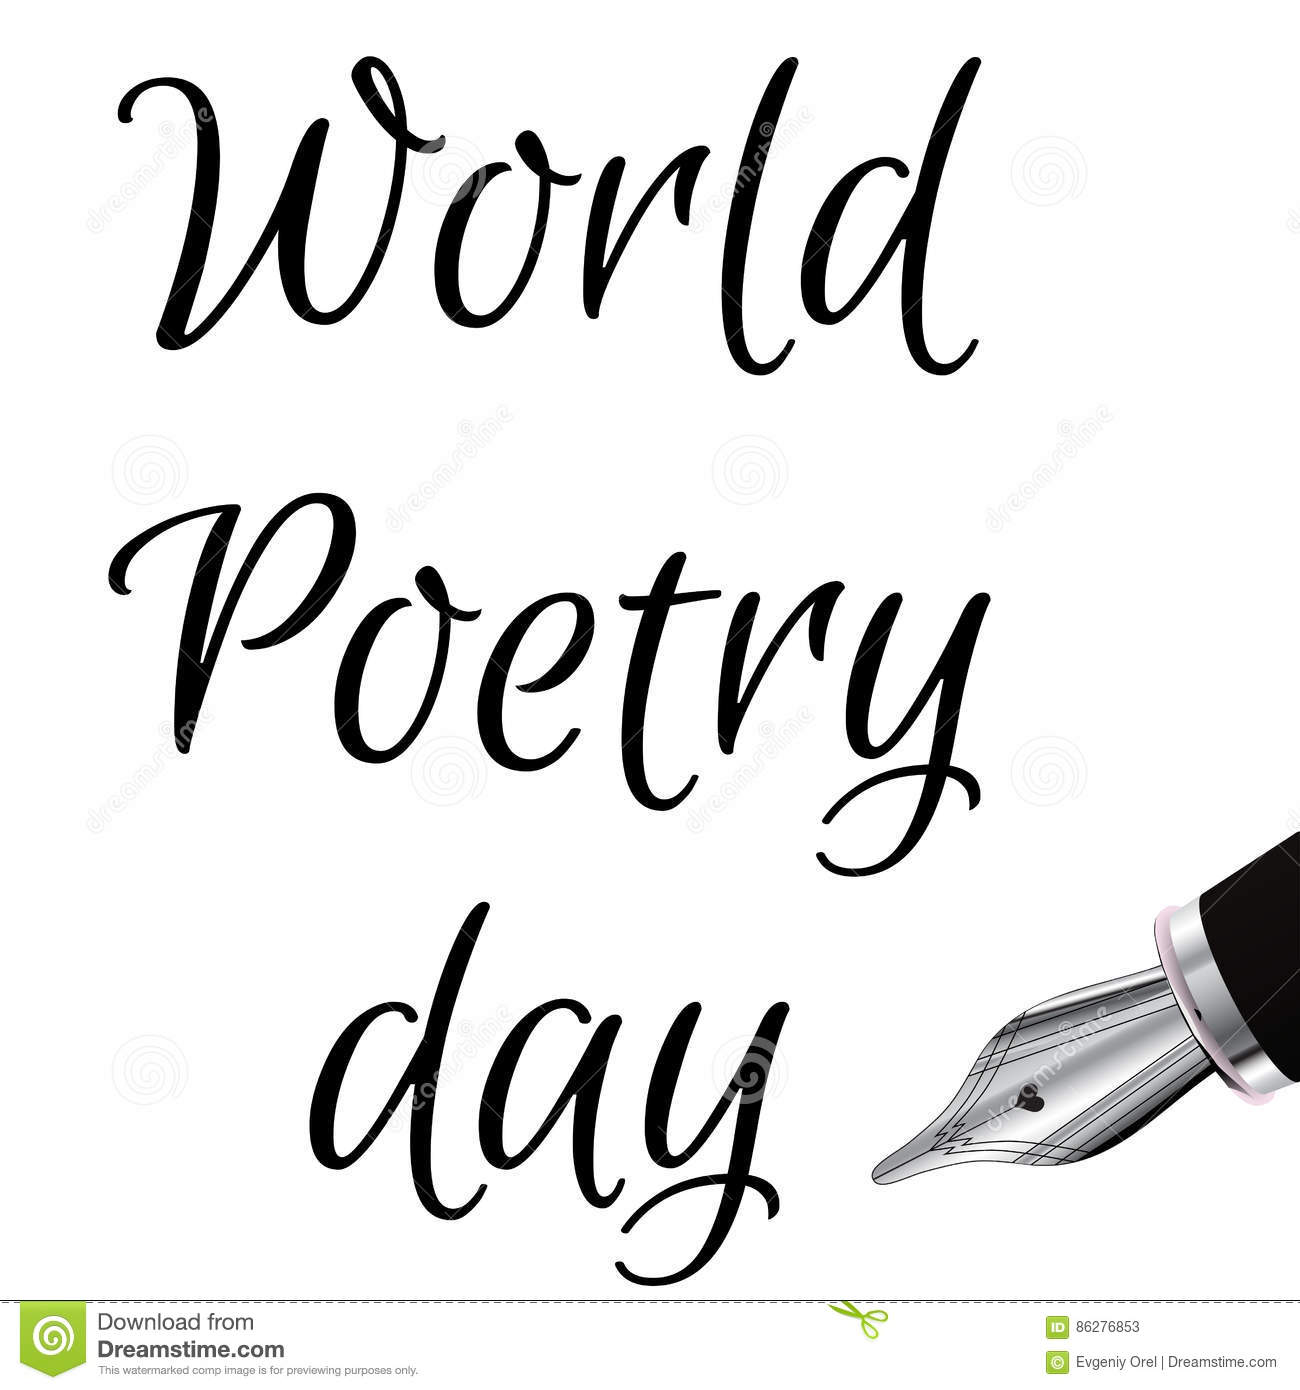 White t shirt day - World Poetry Day Illustration With Ink Fountain Pen Made In Black And White 3d Design For Card Print Or T Shirt